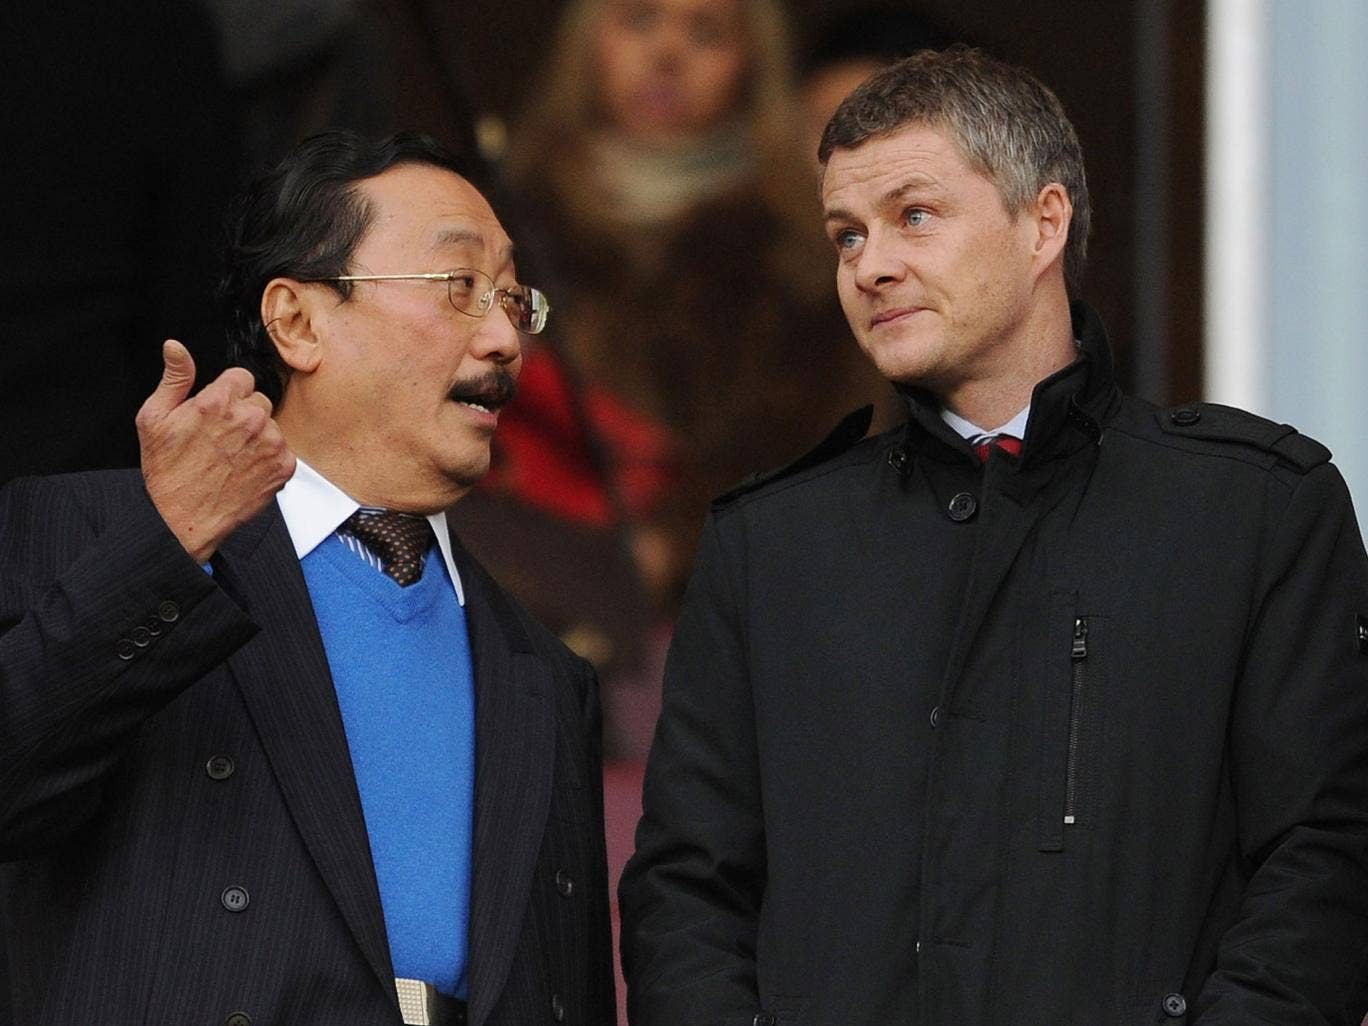 Ole Gunnar Solskjaer has been appointed as the new manager of Cardiff City